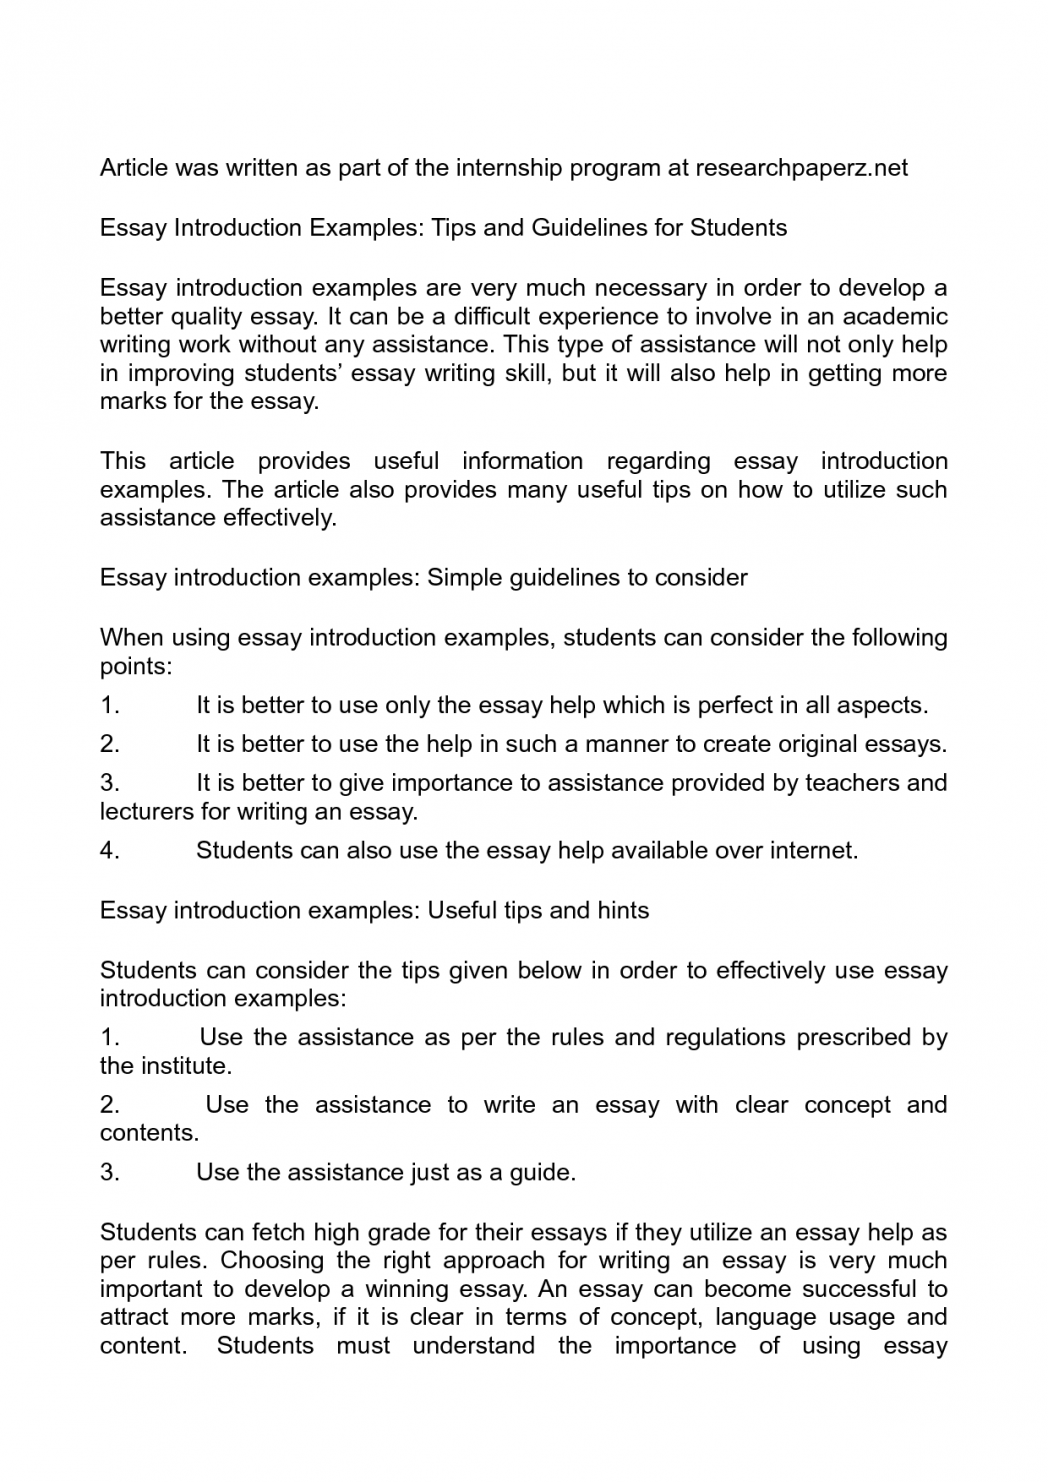 007 Essay Example How To Start Introduction On Good Paragraph An Eyx5t Write University For In Ielts Academic Analytical Argumentative Hook Examples Great Intro 1048x1482 Awesome A Sentence College Full